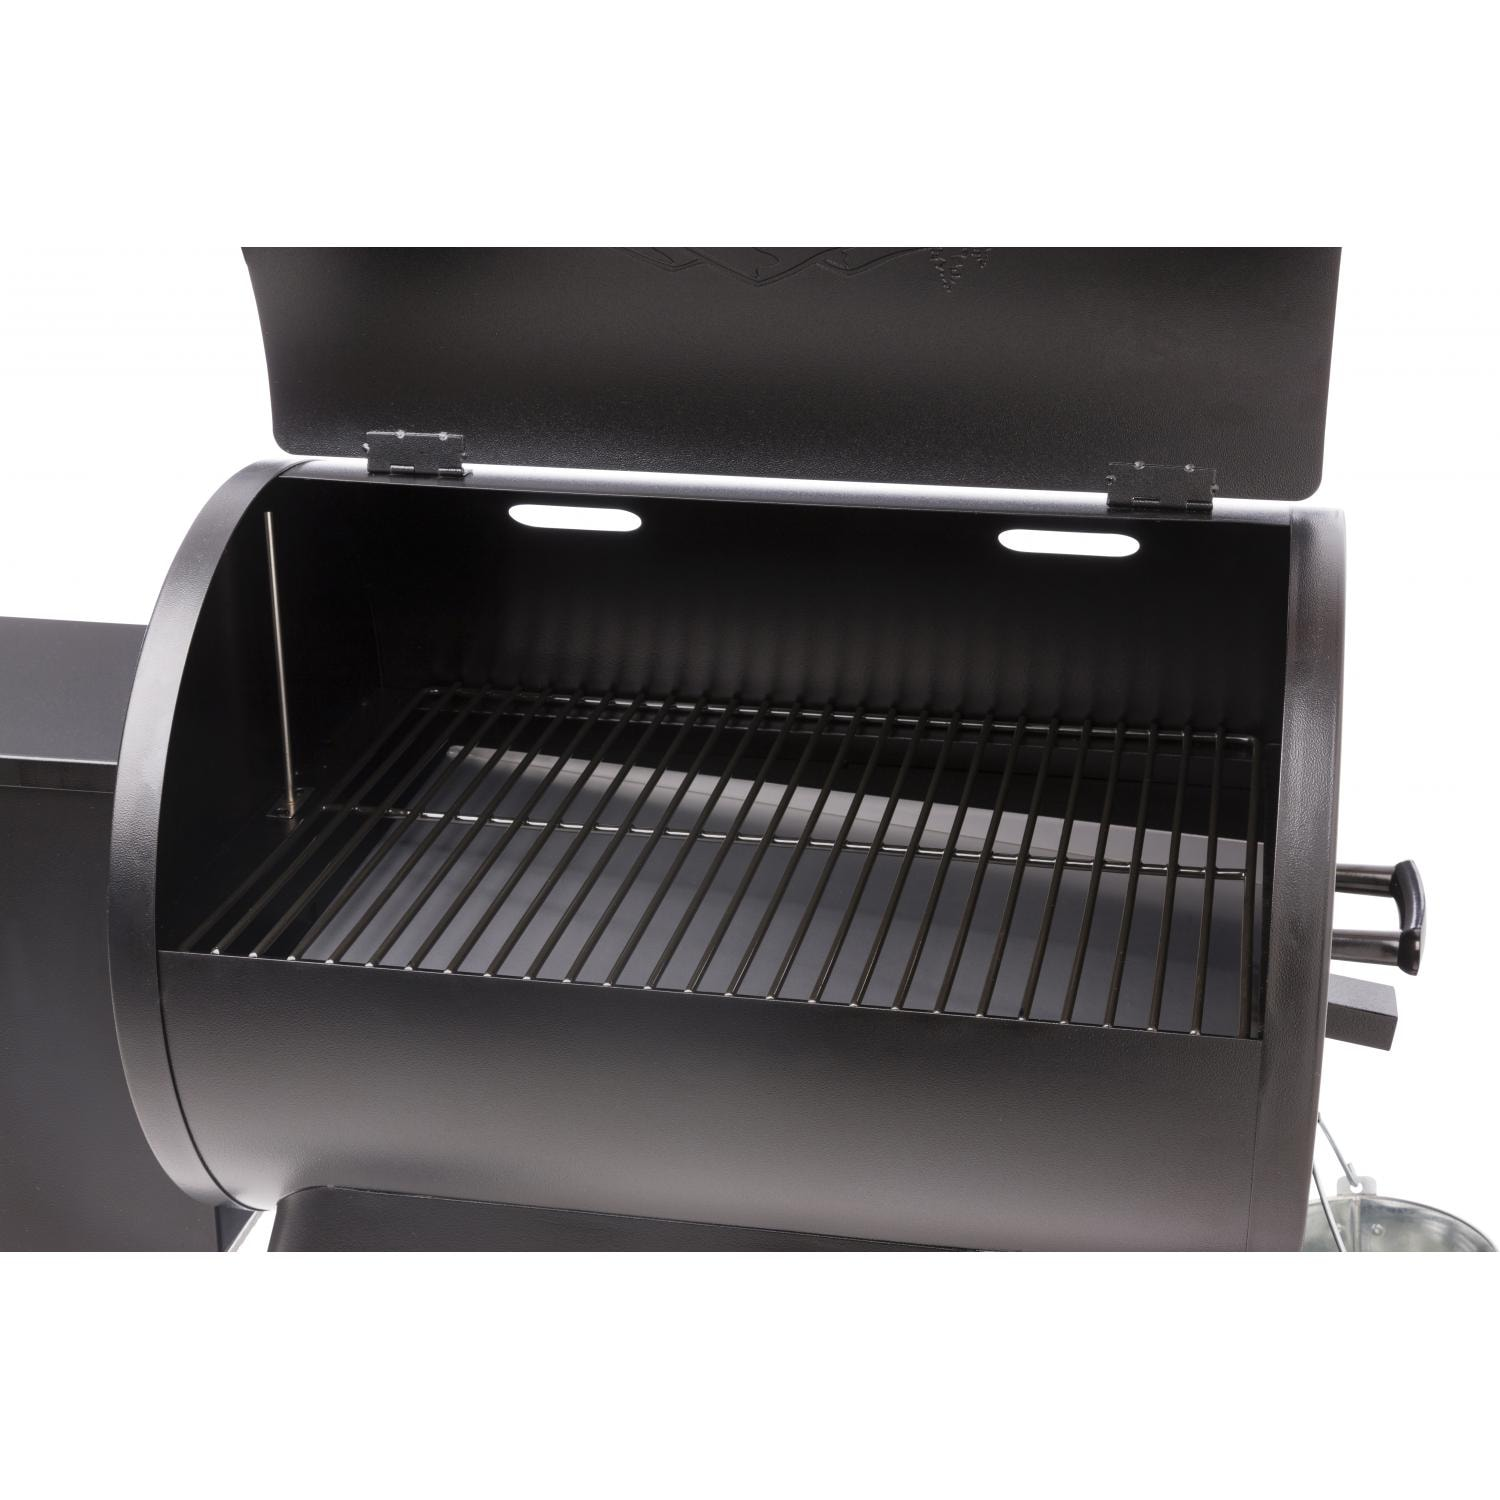 7f0e59cea49bac5a19cf1b2f146ee0c7?i10c=img.resize.fit(width 1000height 1000bordercolor '0xffffff') traeger lil tex elite 22 pellet grill on cart tfb42lzb bbq guys 2016 Texas Elite 34 Traeger at crackthecode.co